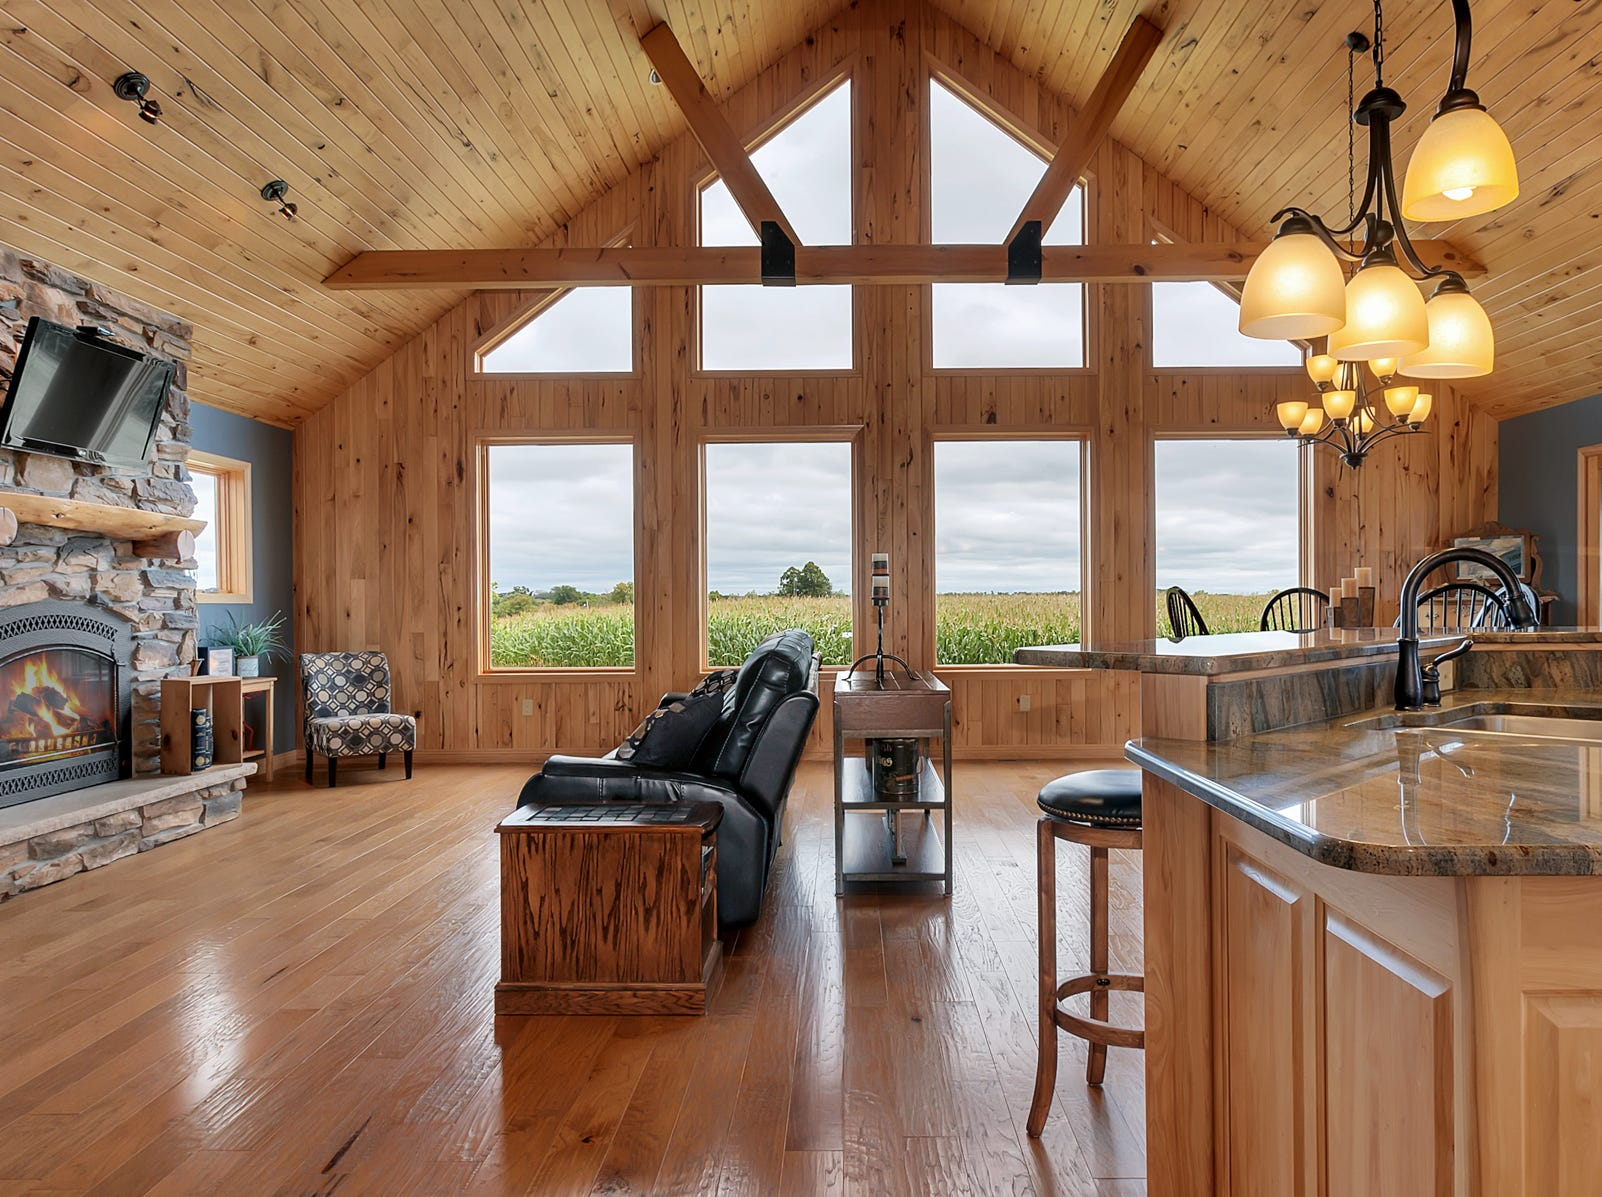 The main floor living room is part of a great space filled with perfect touches: from the hand-scraped hickory floors all the way up to the vaulted wood ceiling, from the beautiful stone fireplace to the picturesque view of corn swaying in the breeze.